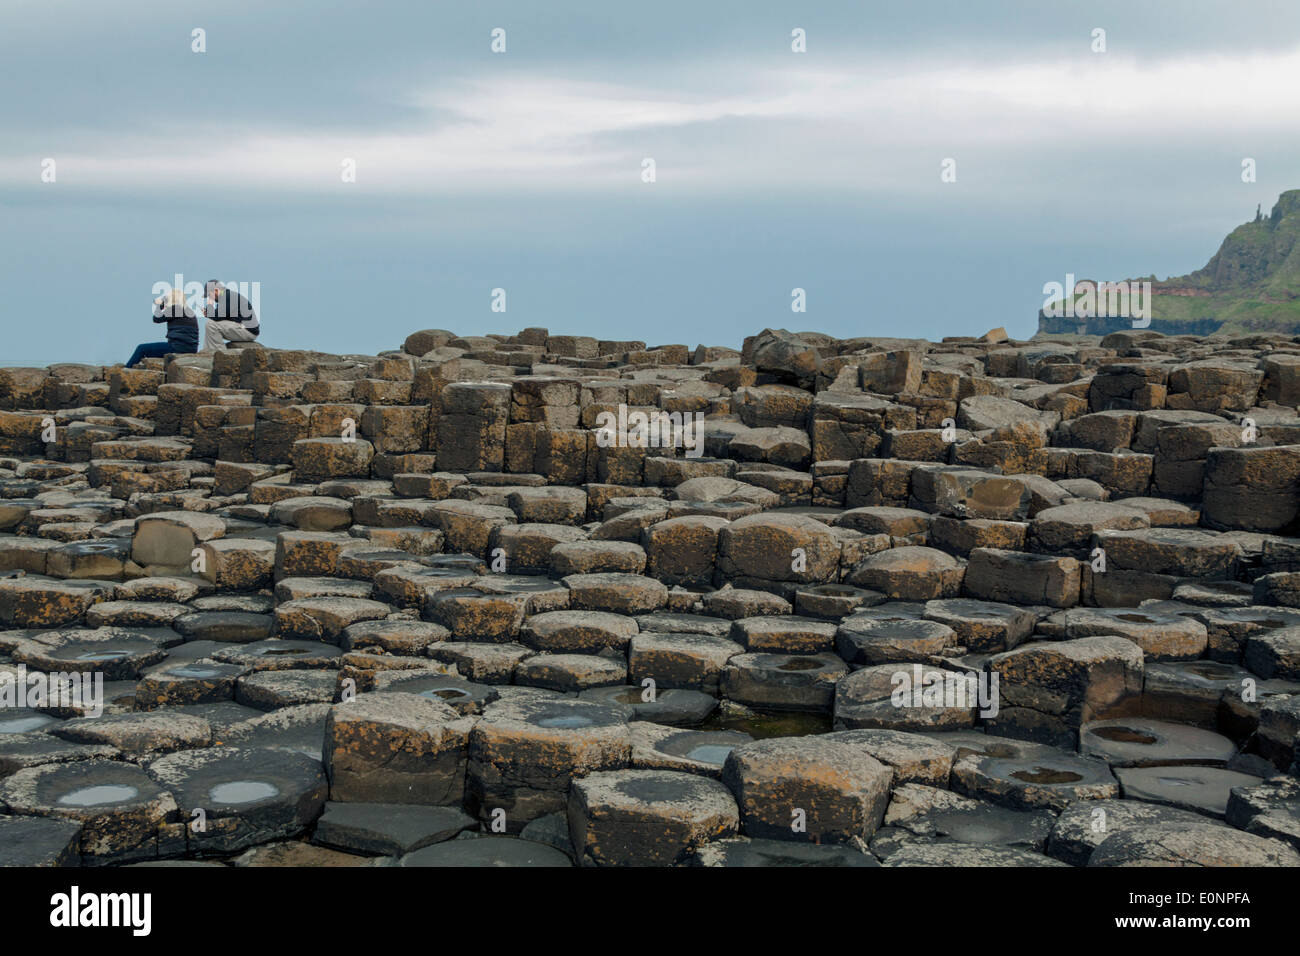 Couple sitting on the basalt stones at the Giant's Causeway, County Antrim, Northern Ireland, UK, a UNESCO World Heritage Site. - Stock Image